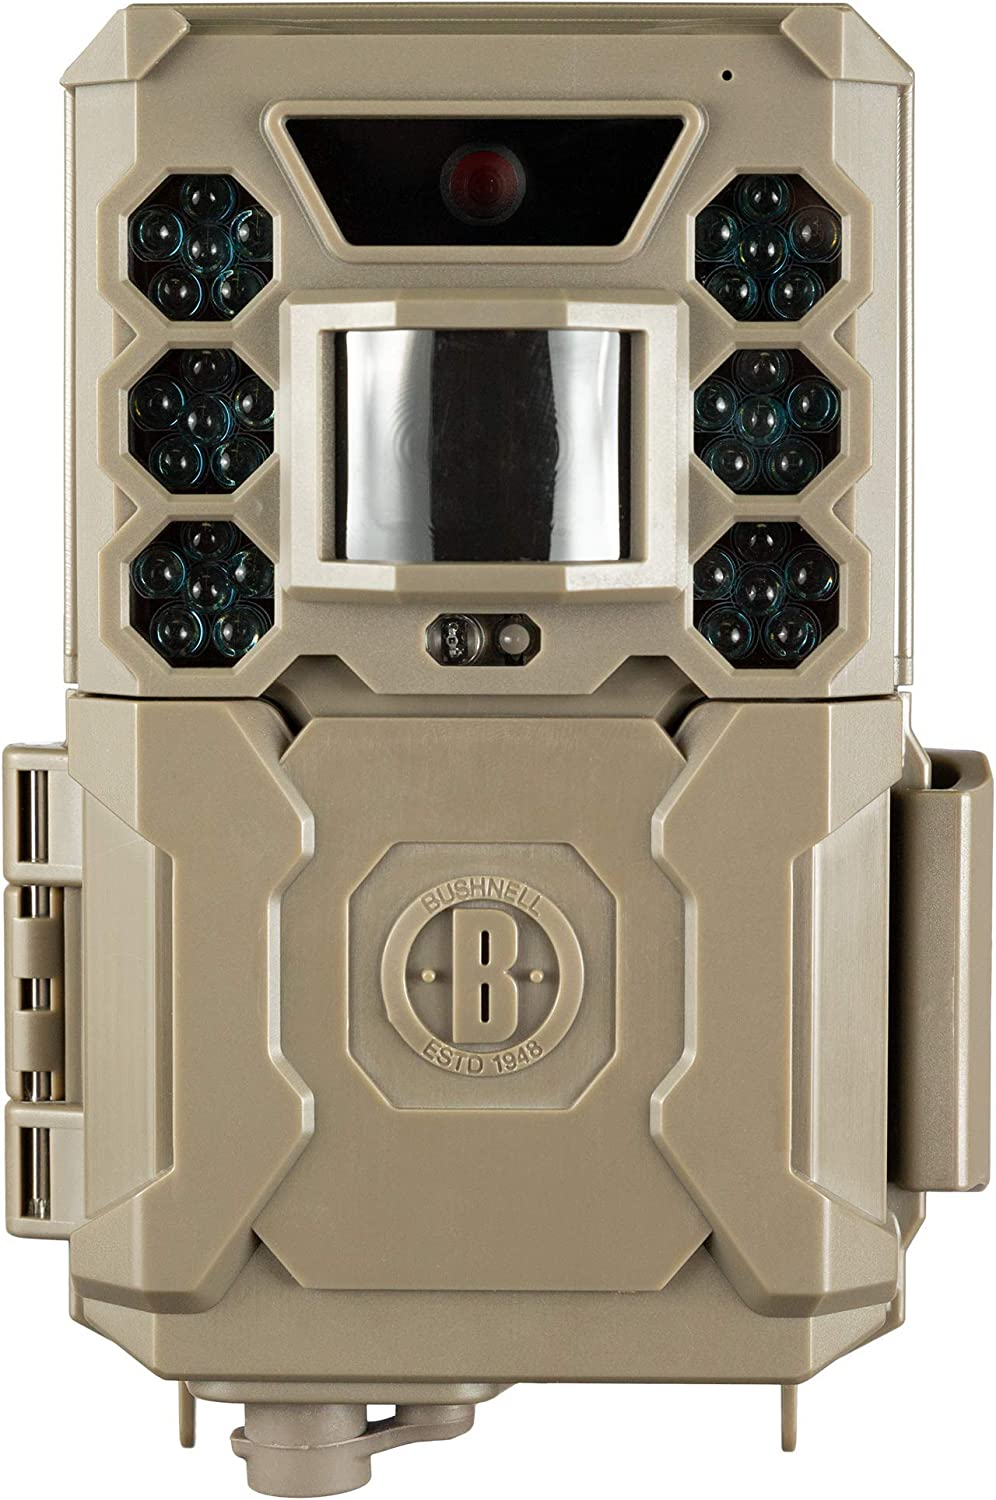 Bushnell by Primos 24MP CORE Trail Camera, Single Sensor, Low Glow_119936C,Tan